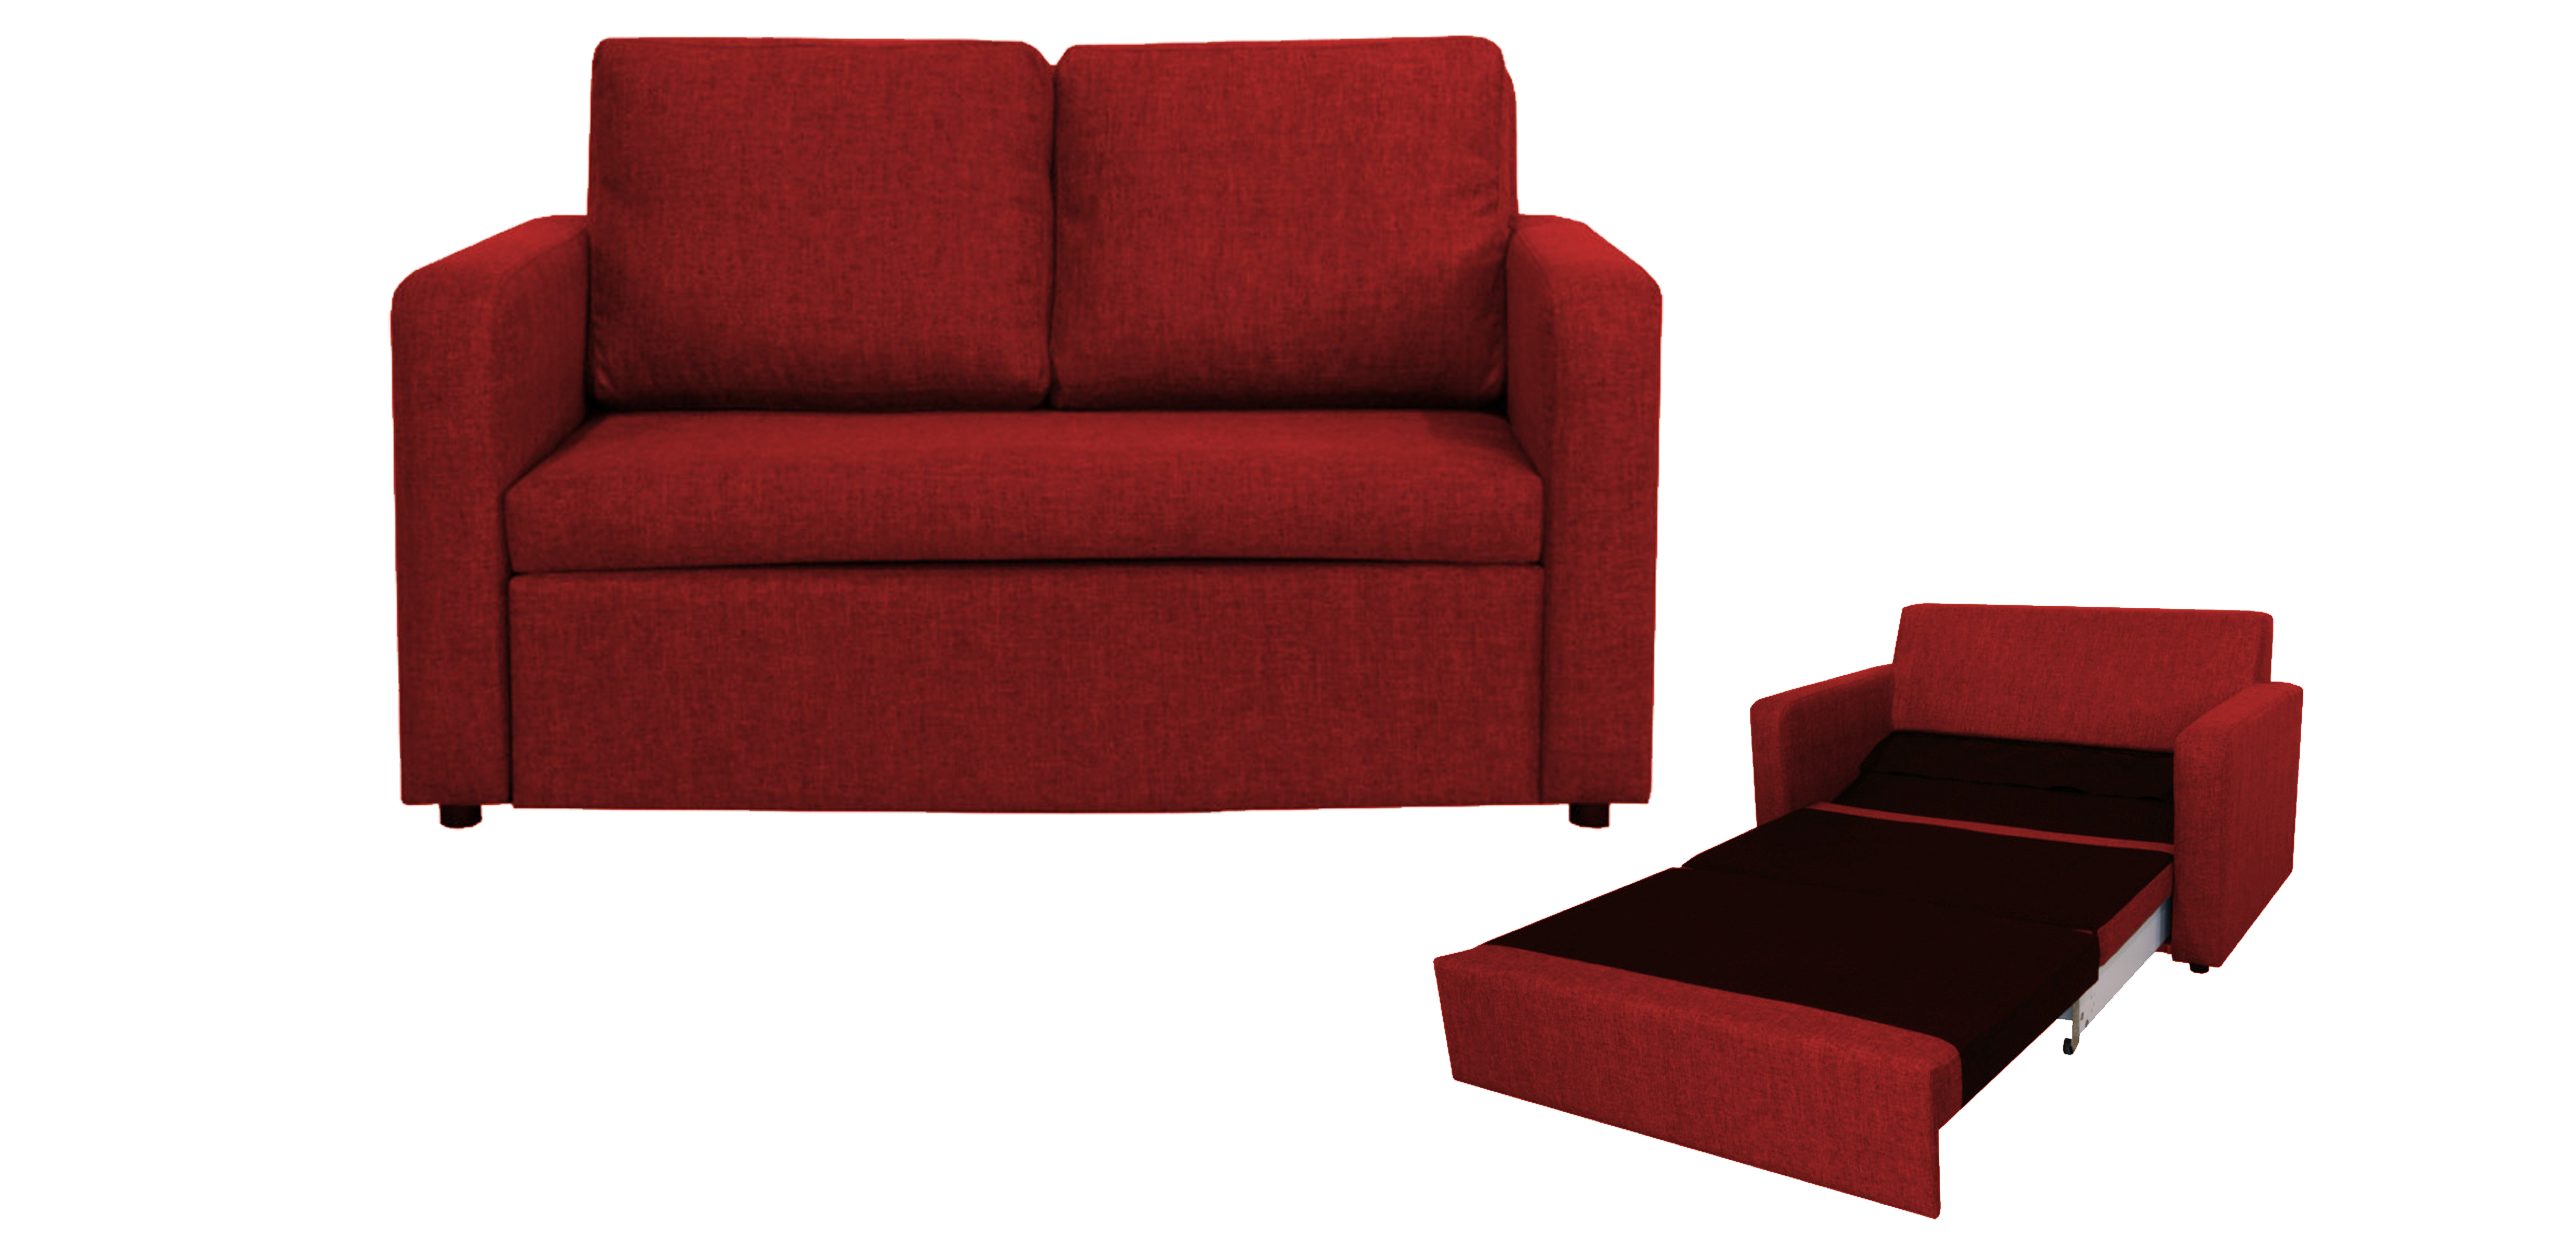 Furniture clipart red couch. Sofa cedar tables reclining